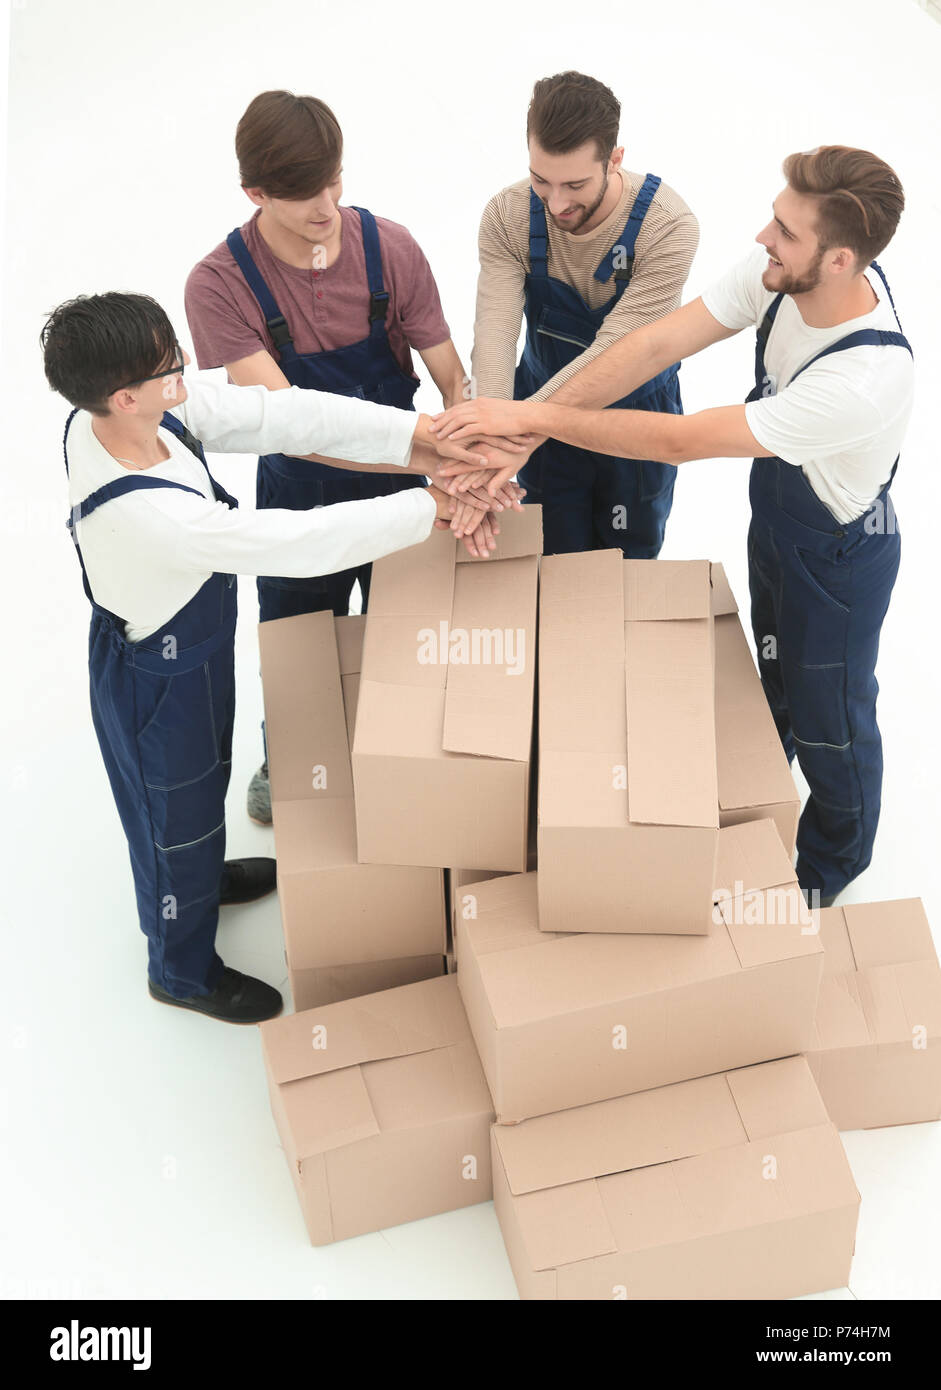 Happy smiling movers carrying boxes, isolated on white backgroun - Stock Image